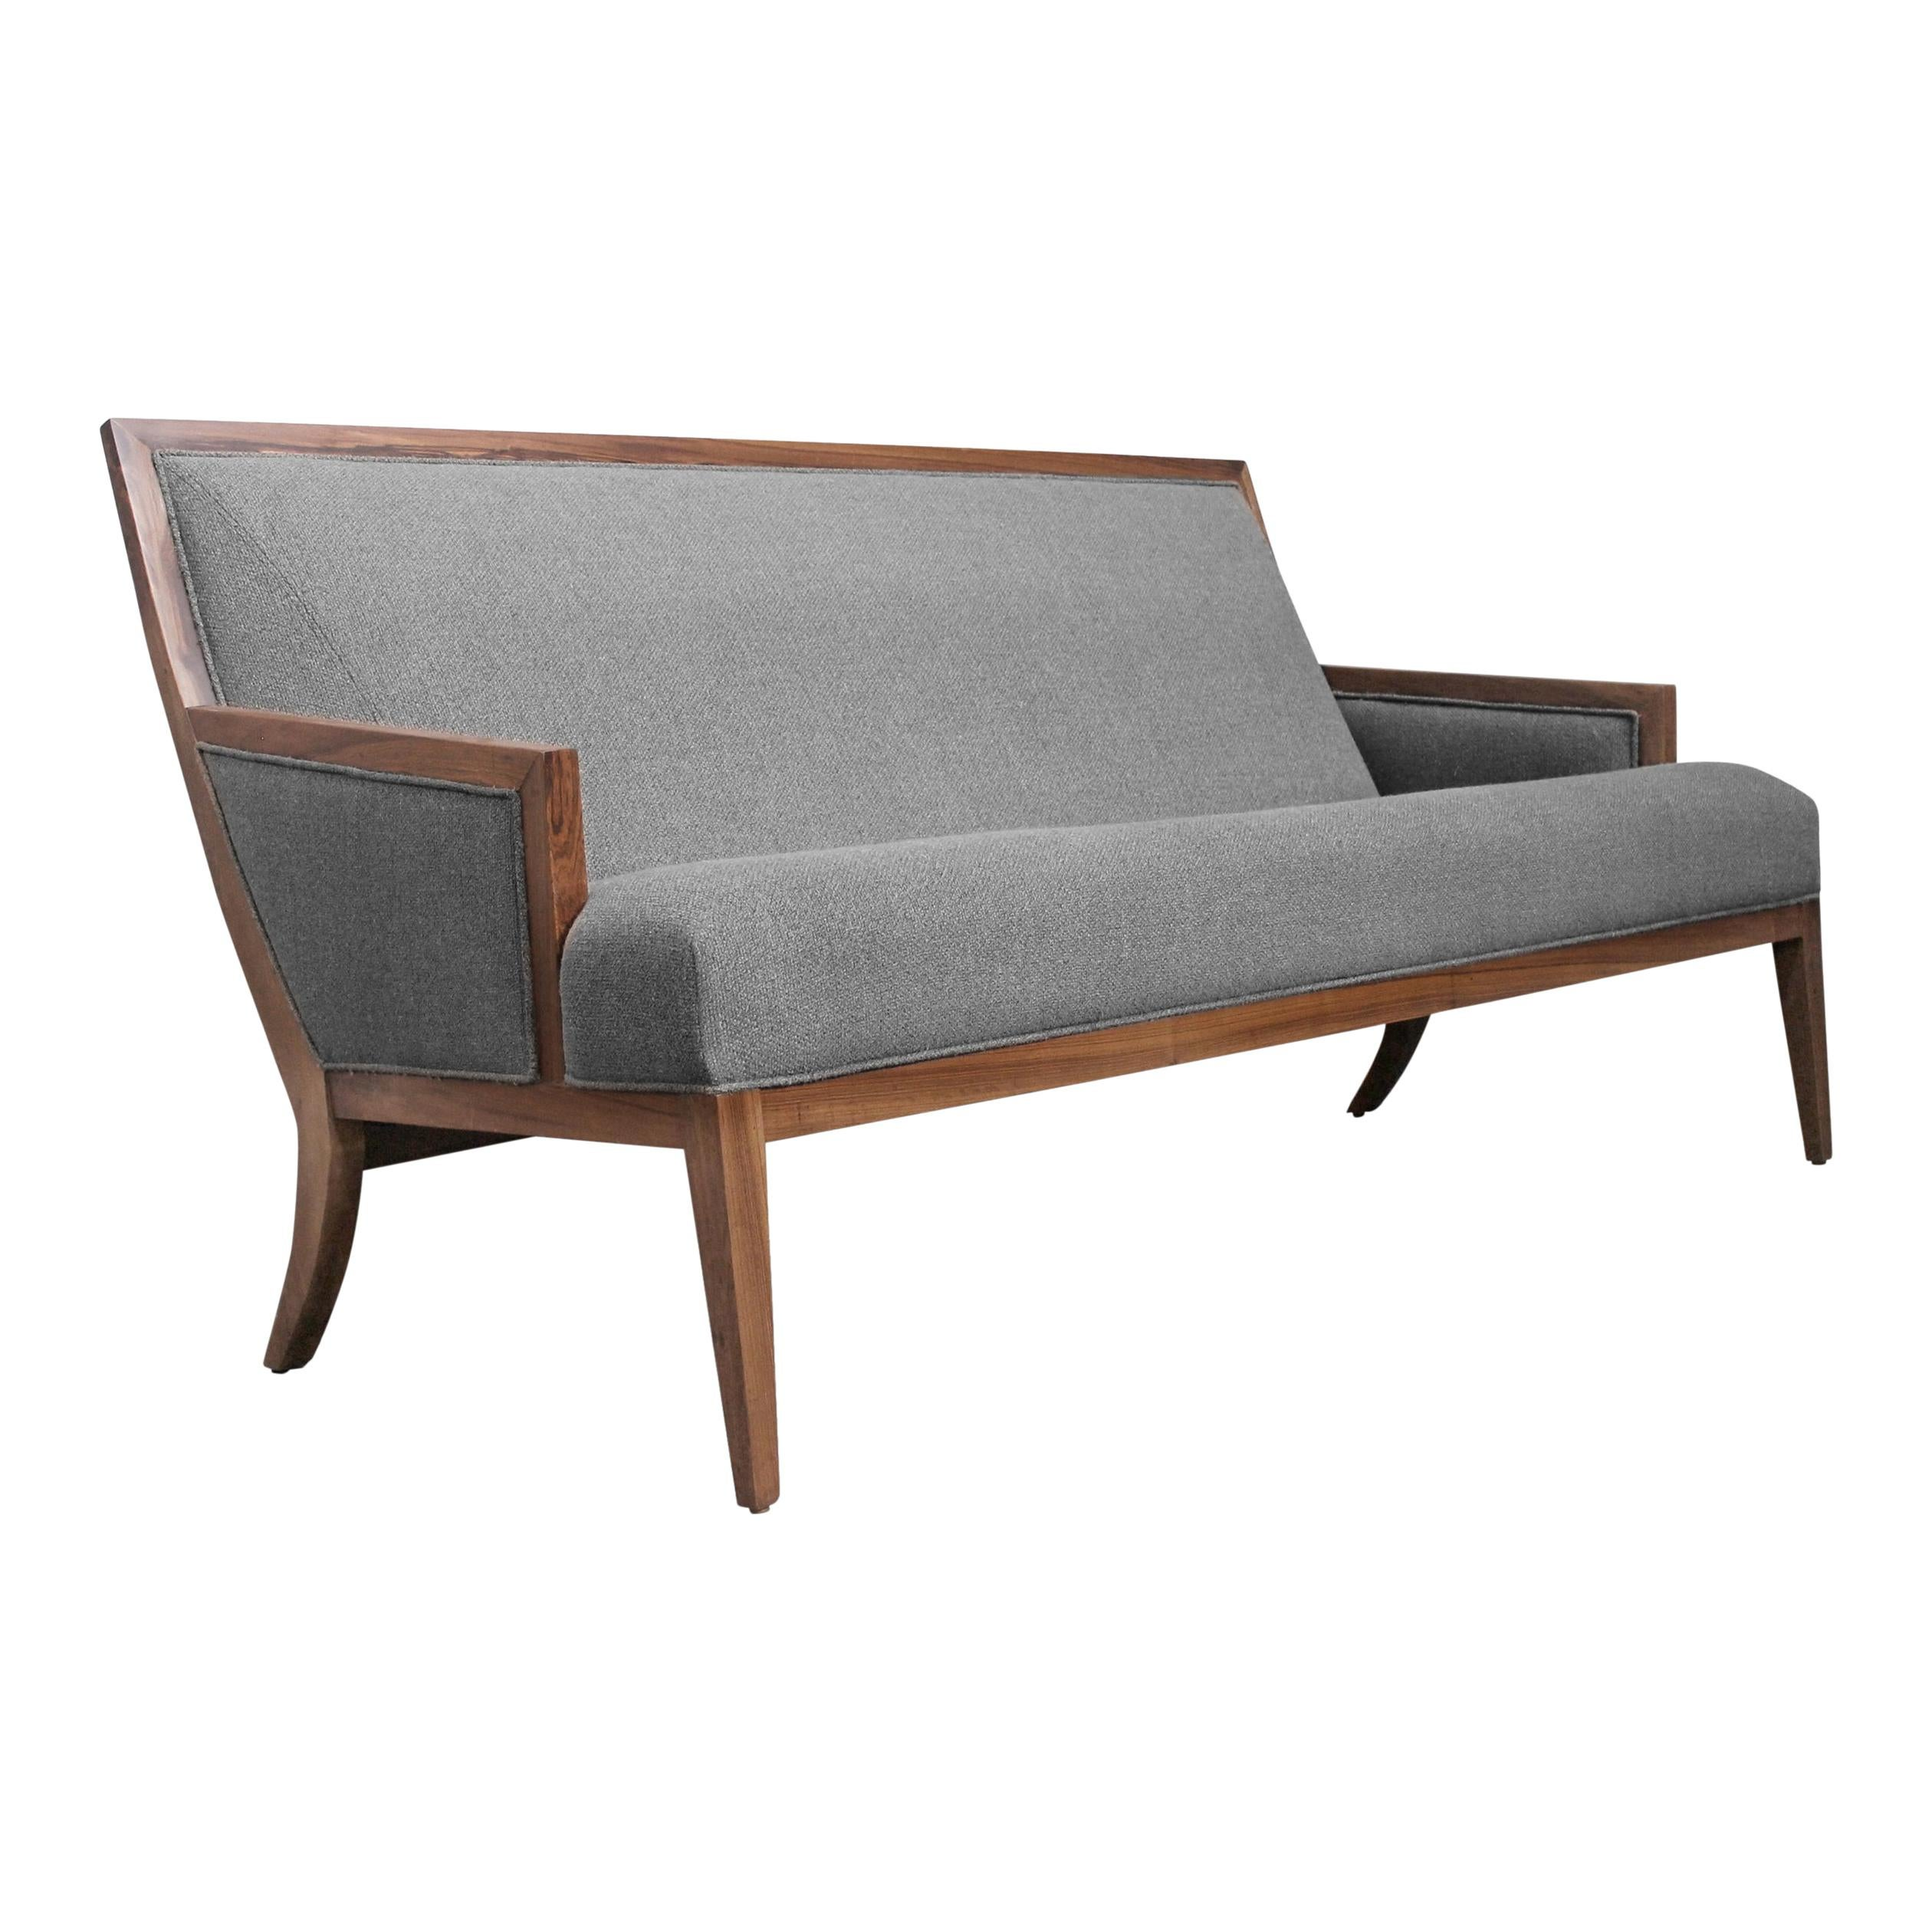 Exotic Wood Contemporary Upholstered Settee from Costantini, Belgrano